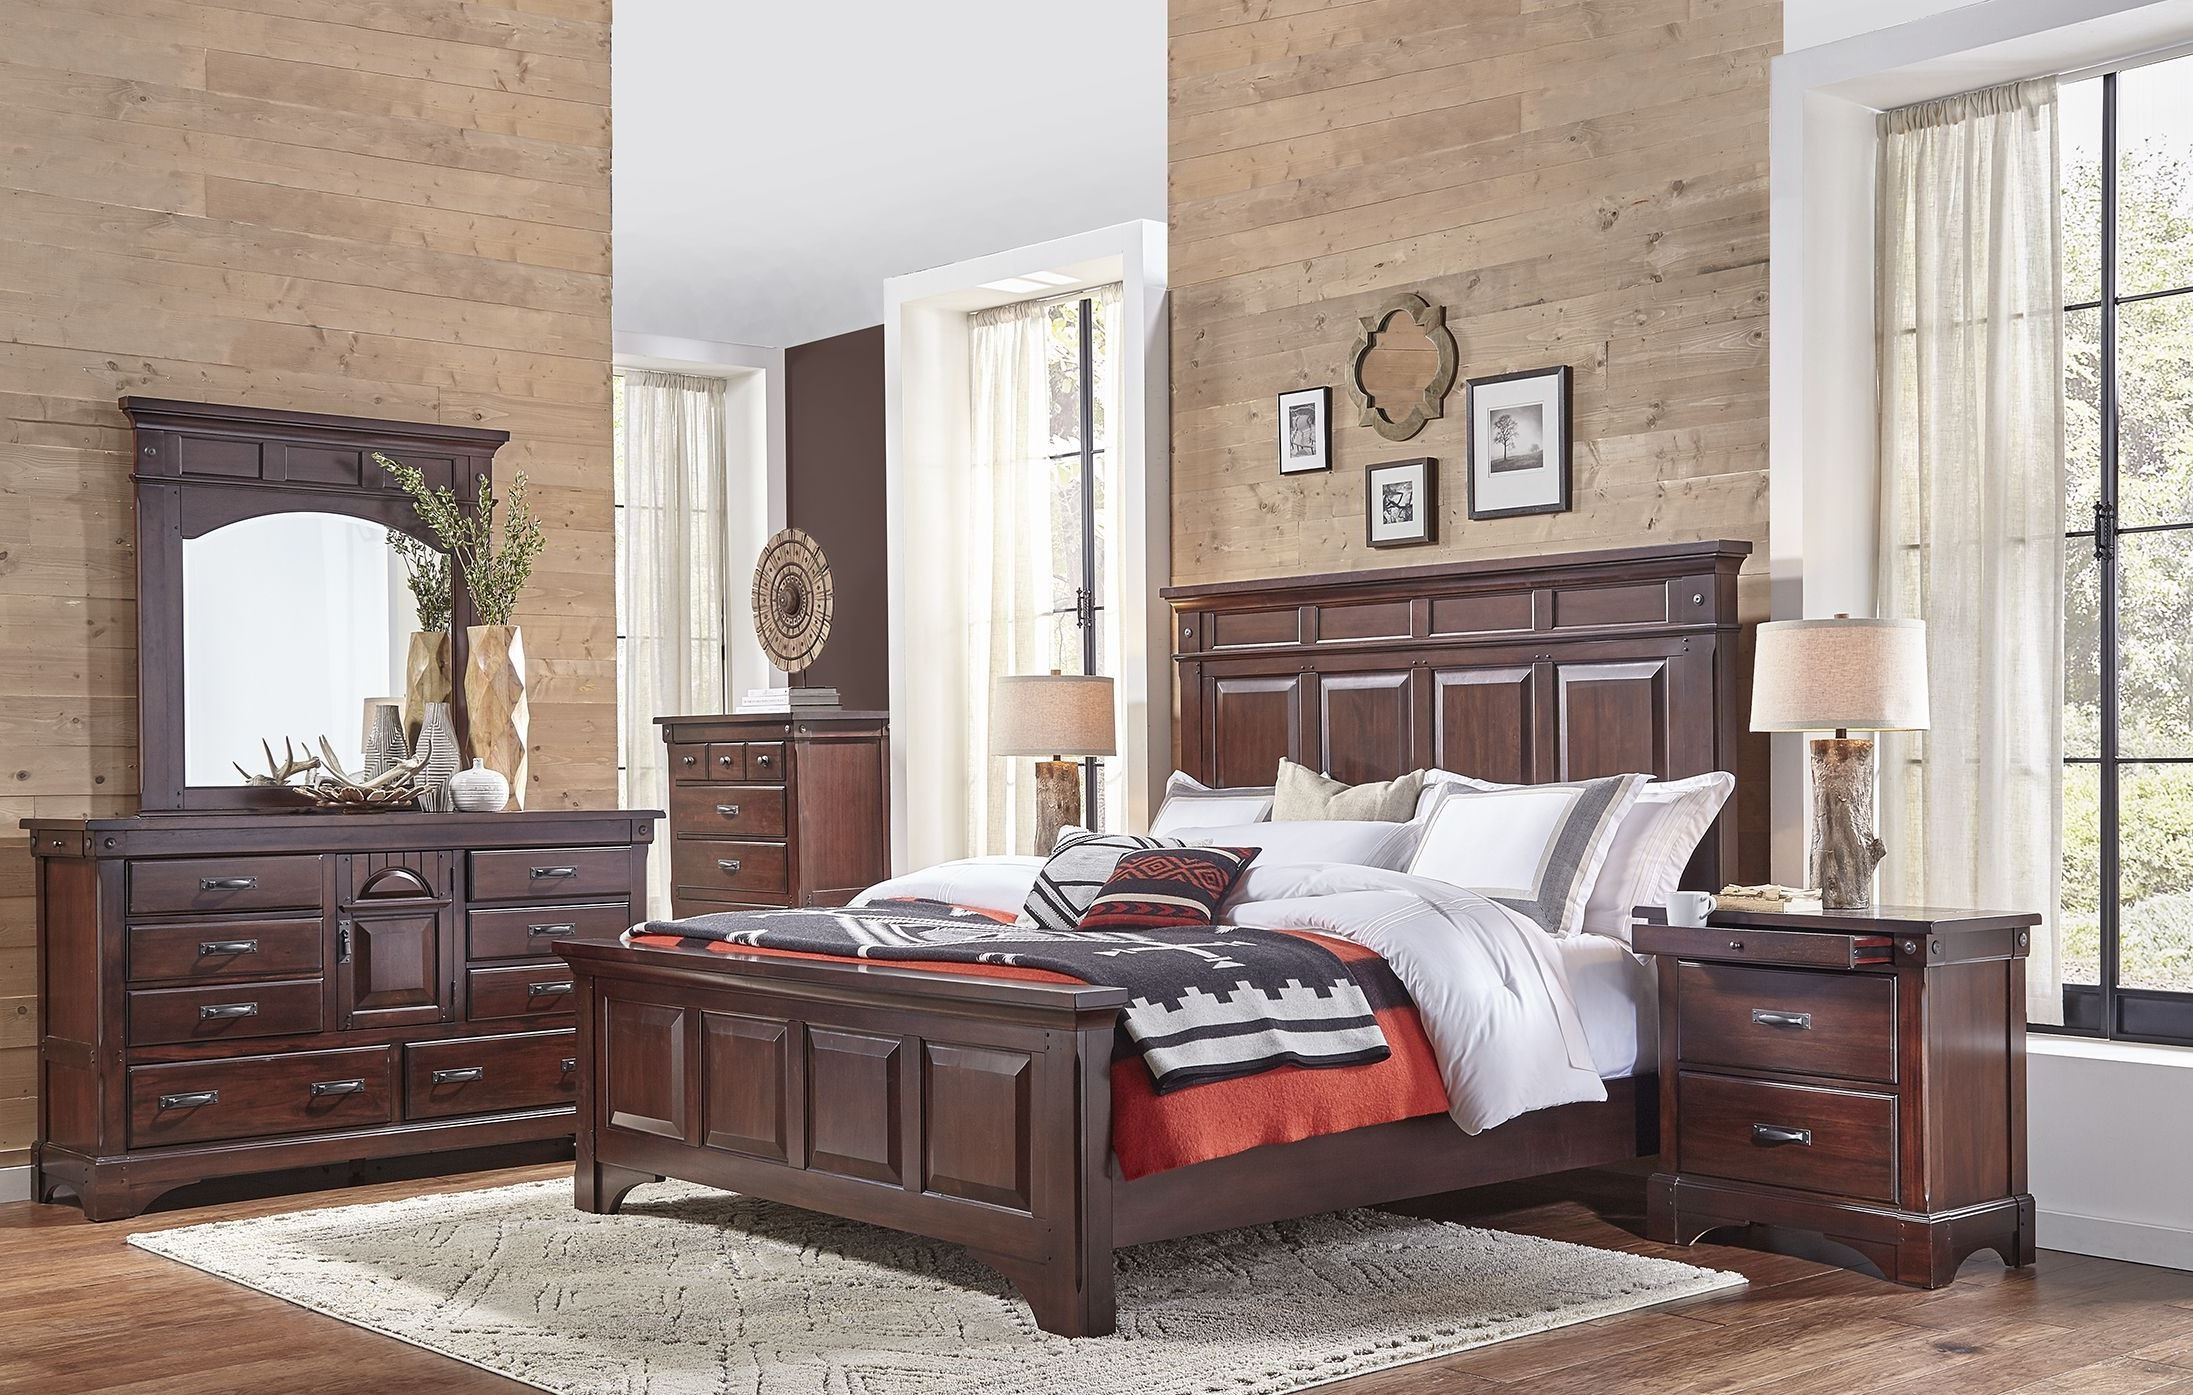 Kalispell Rustic Mahogany Mantel Bedroom Set From A America Coleman Furniture